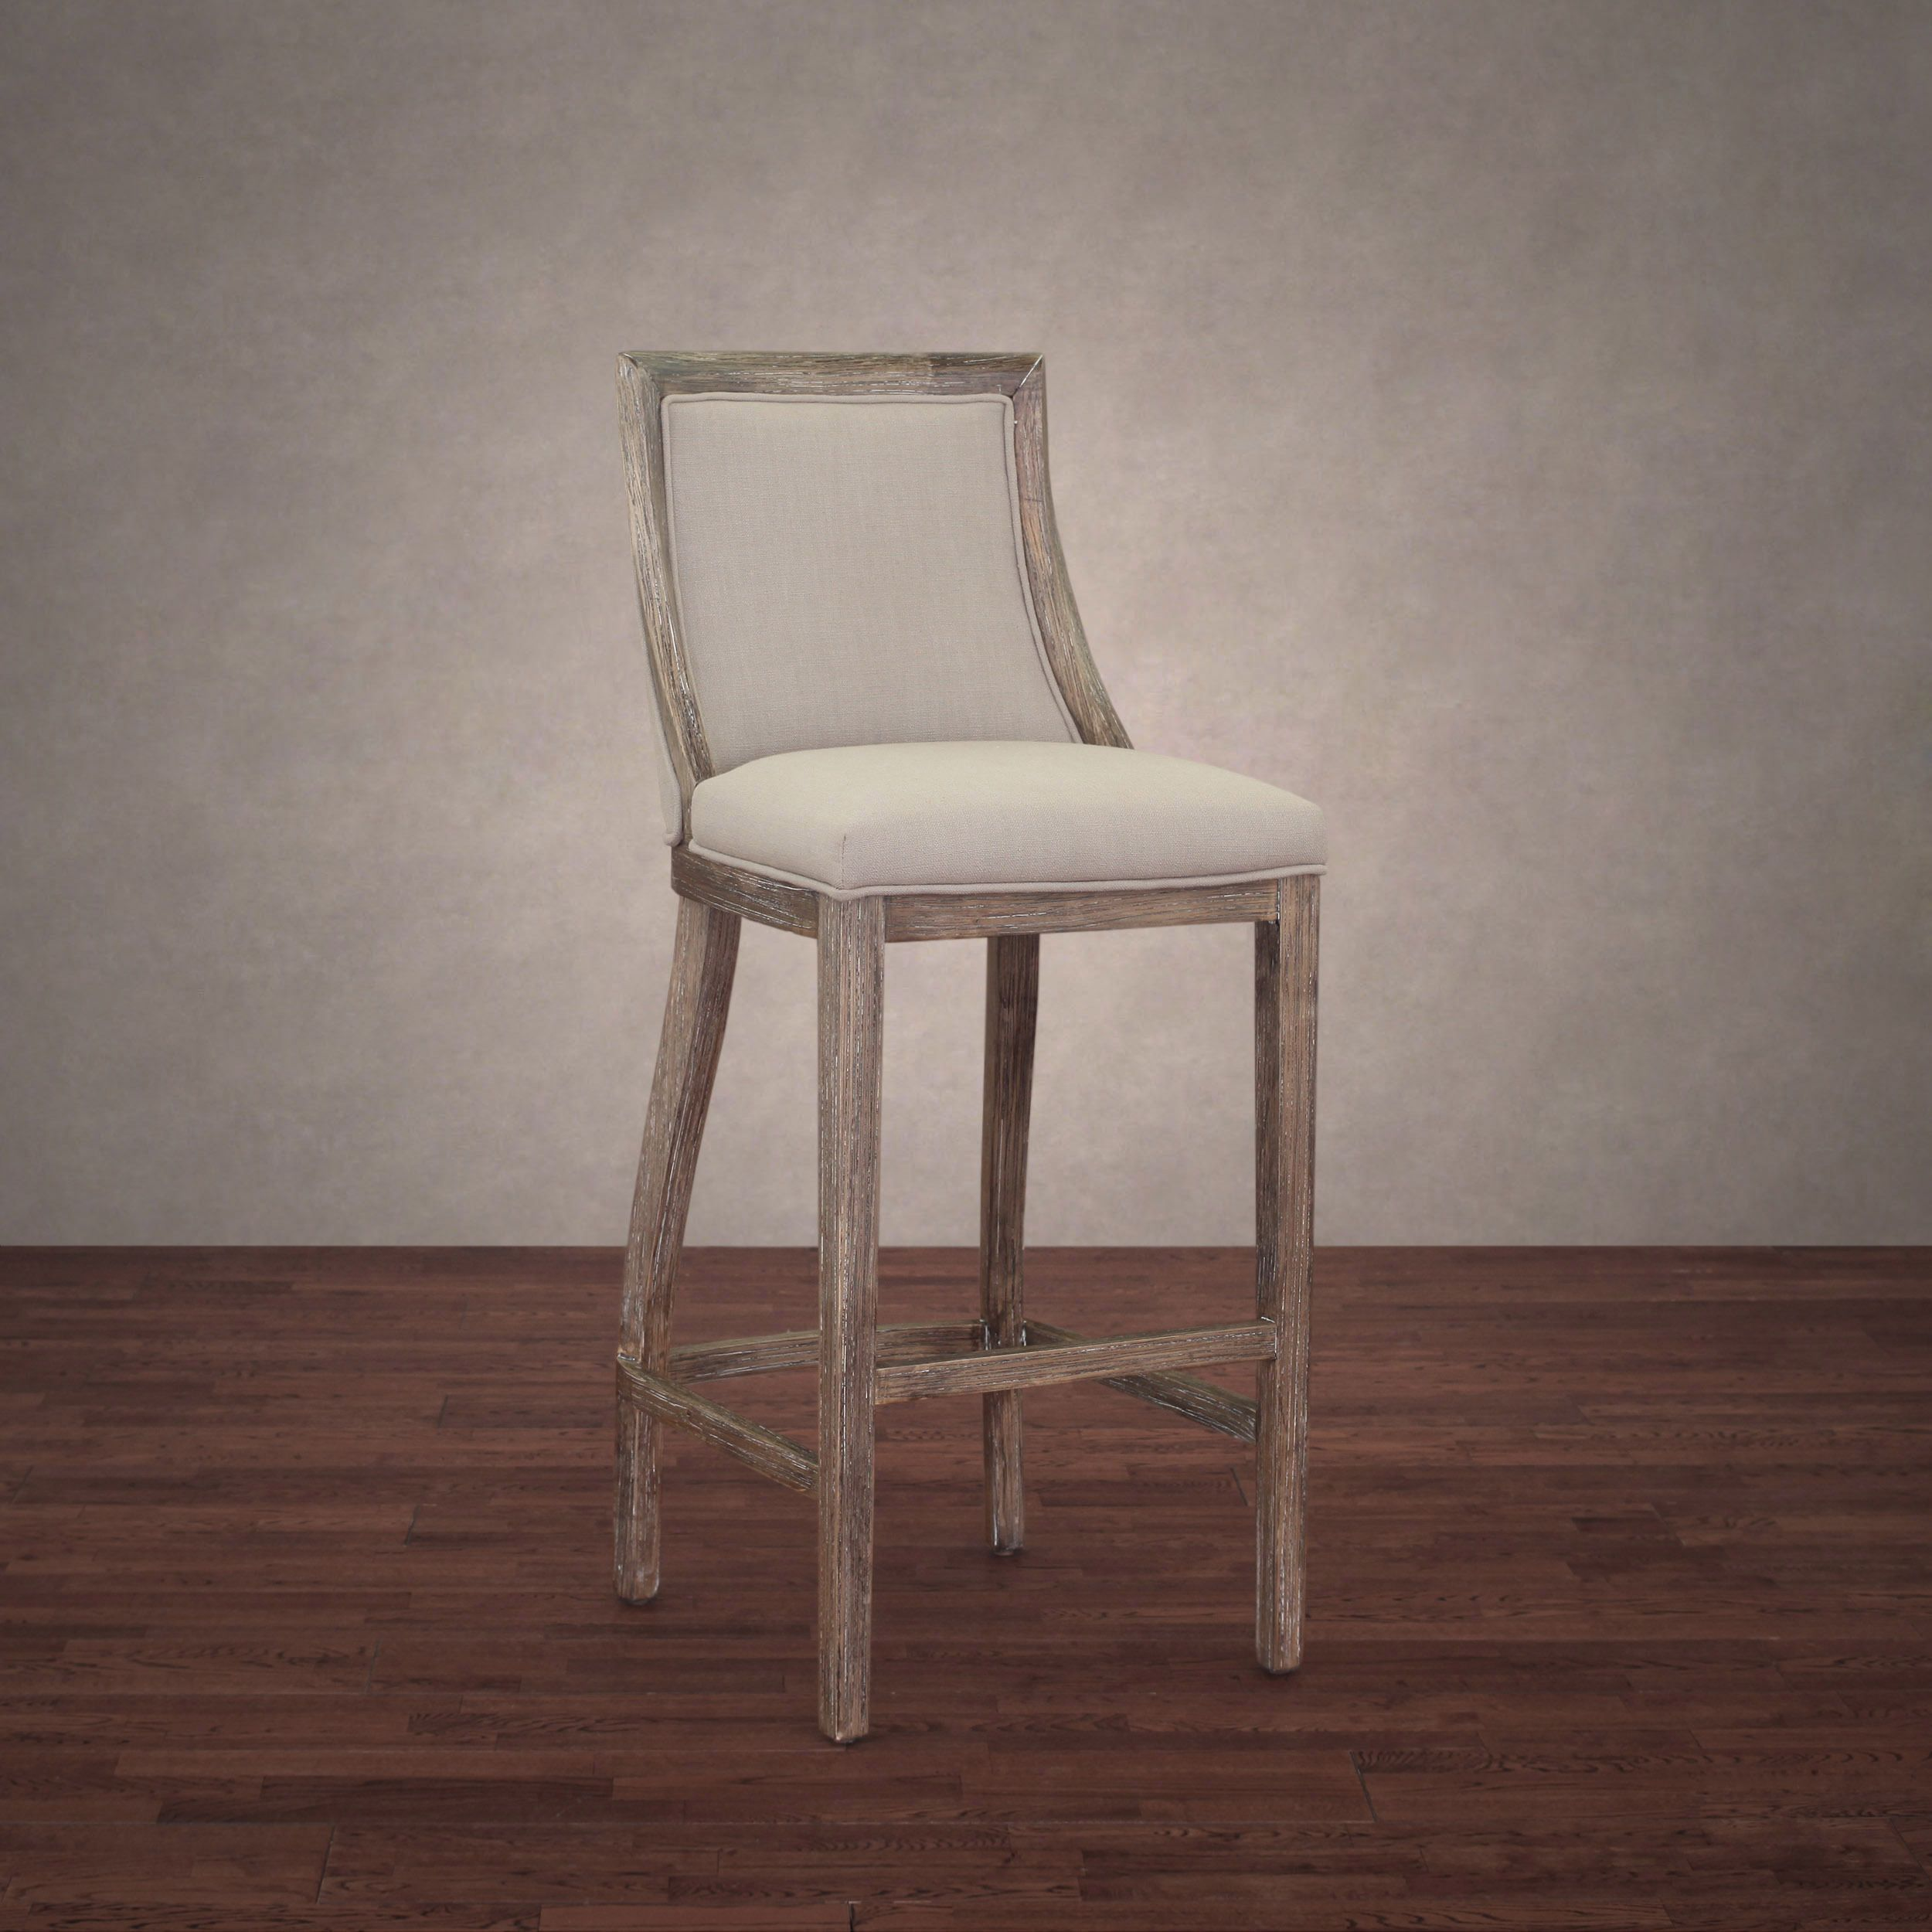 Enhance Your Home And Dining Decor With The Uniquely Styled Park Avenue Beige Linen Bar Stool